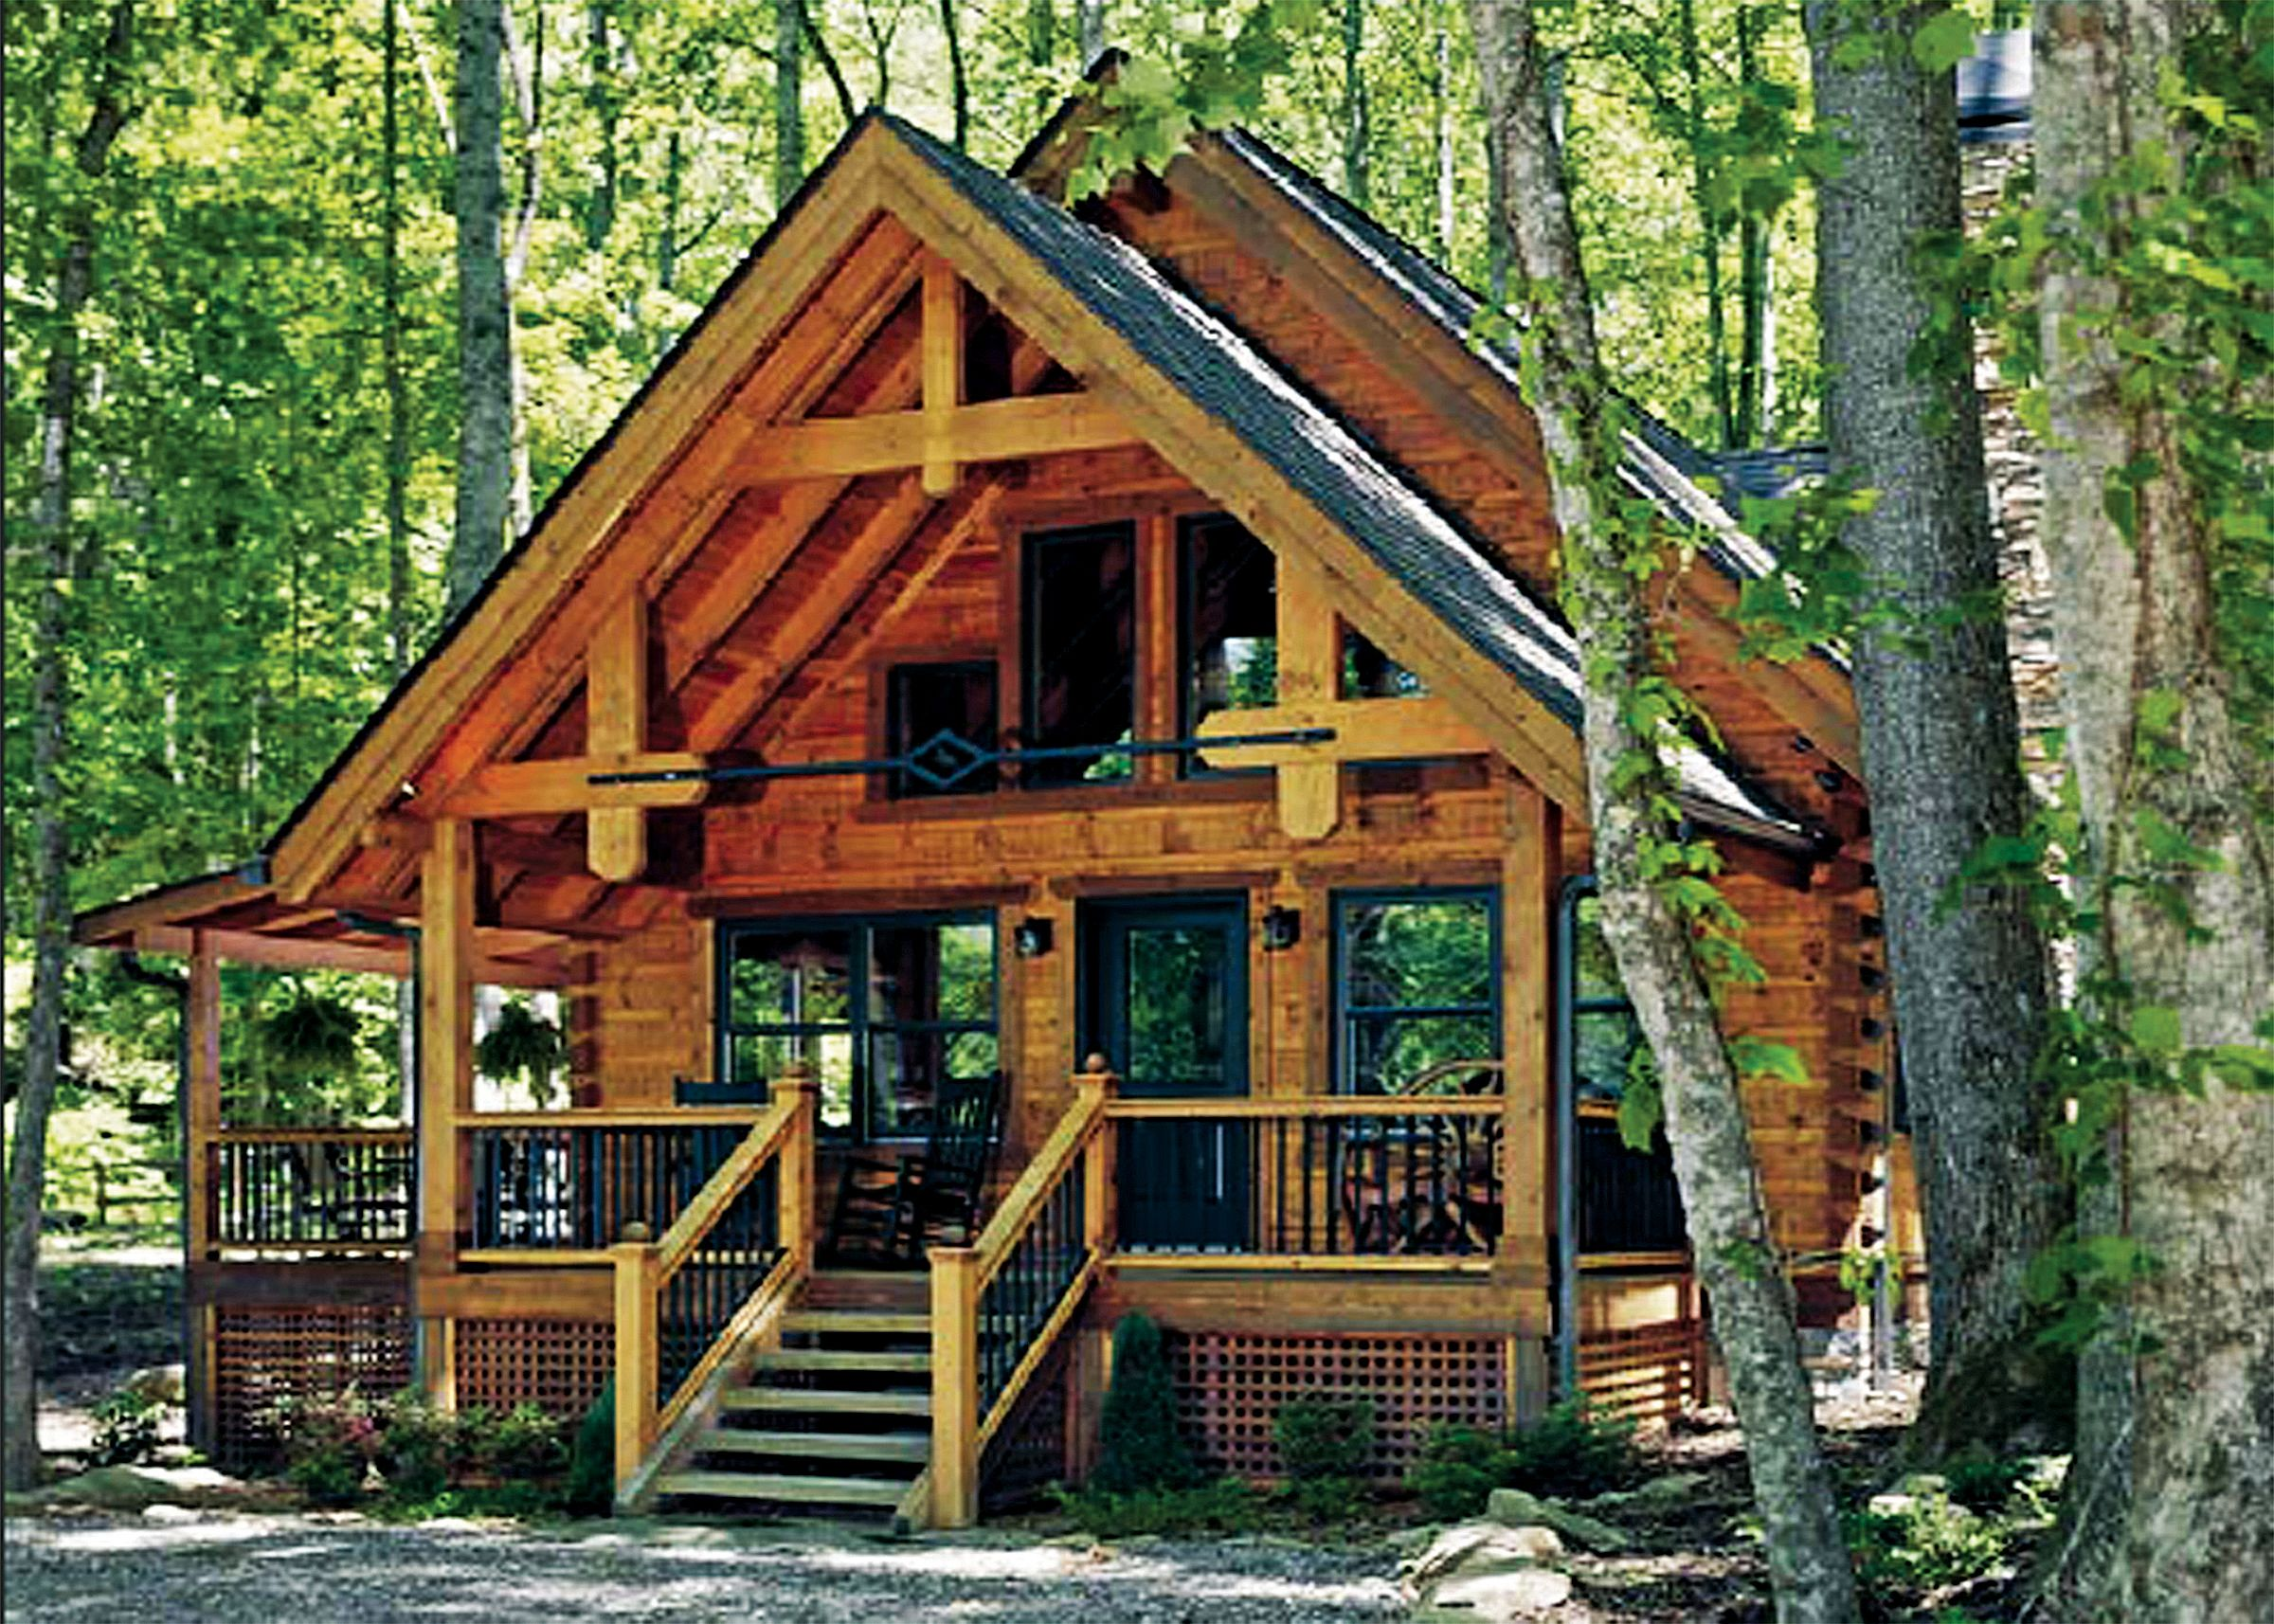 Whittier Home Plan - LogHome.com | Log homes, House plans, Cabins in the  woods